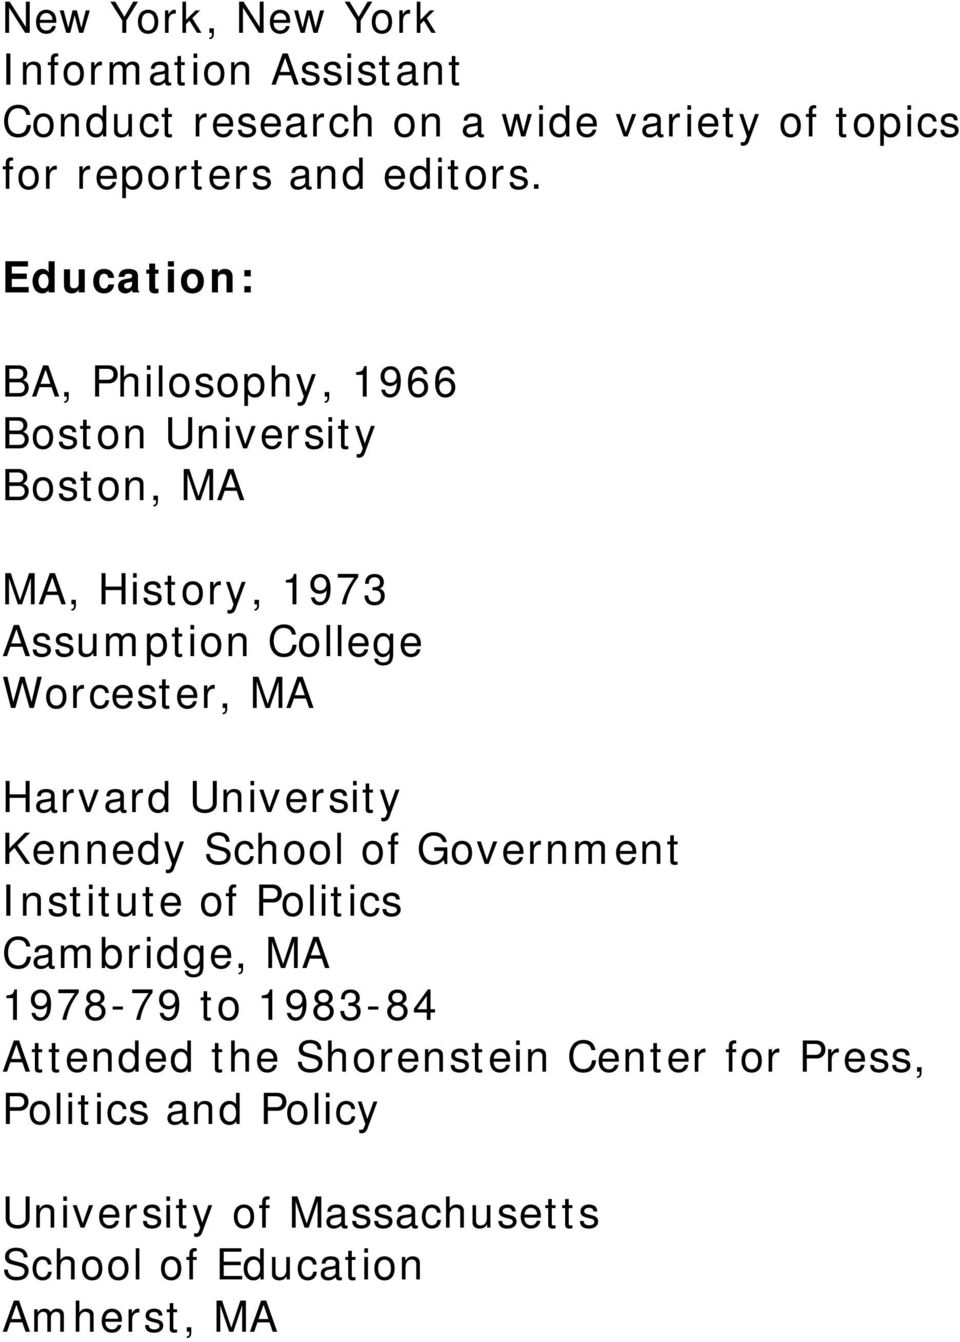 Harvard University Kennedy School of Government Institute of Politics Cambridge, MA 1978-79 to 1983-84 Attended